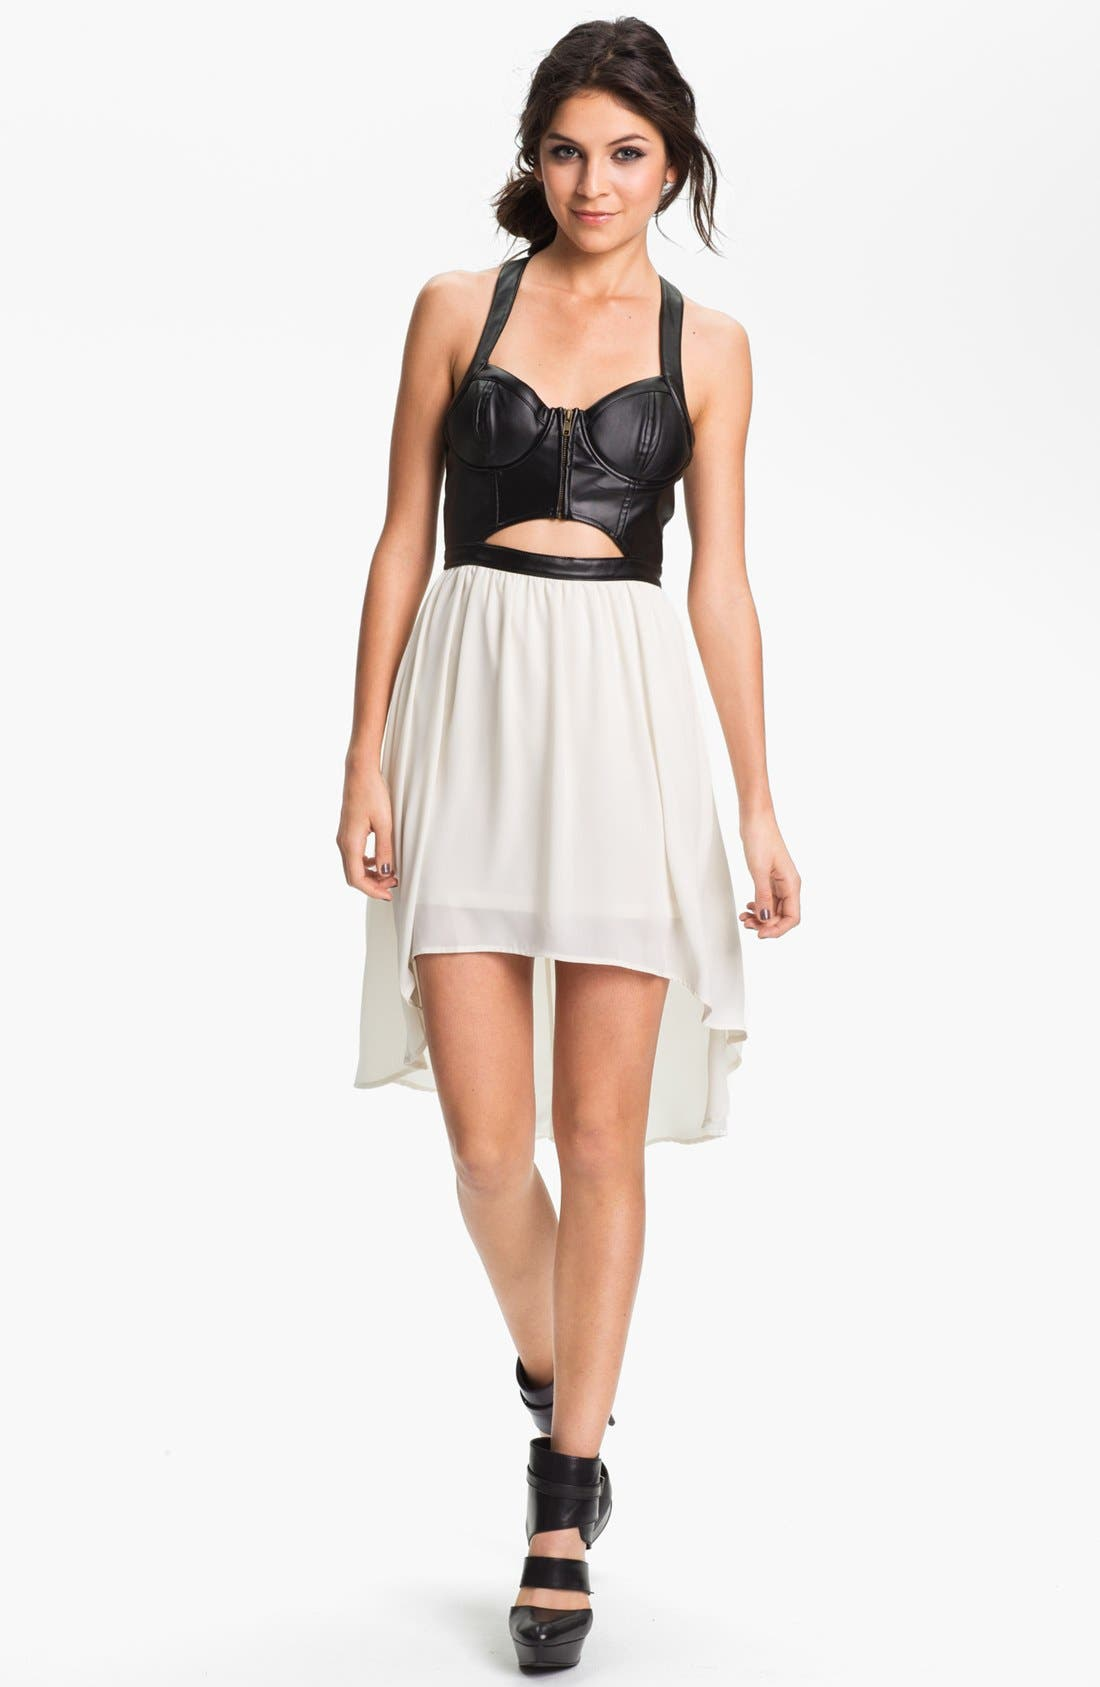 Alternate Image 1 Selected - Lush Clothing Cutout Faux Leather Bustier Dress (Juniors)